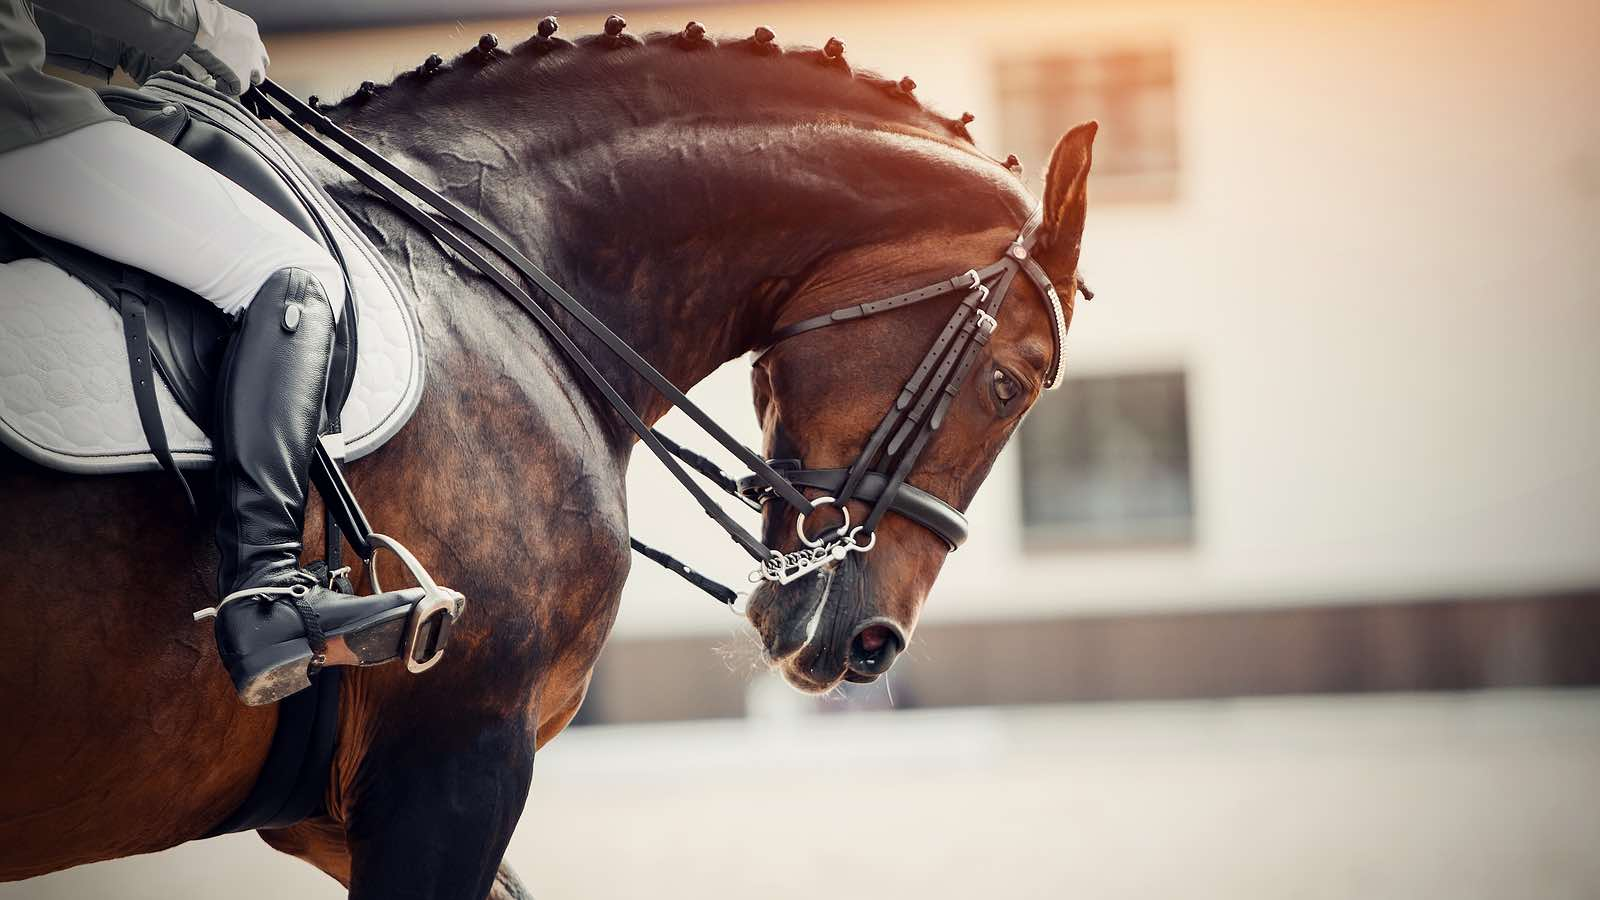 Assessment of the Equine Patient : Enhance your evaluation skills and get better overall results for your horse patients